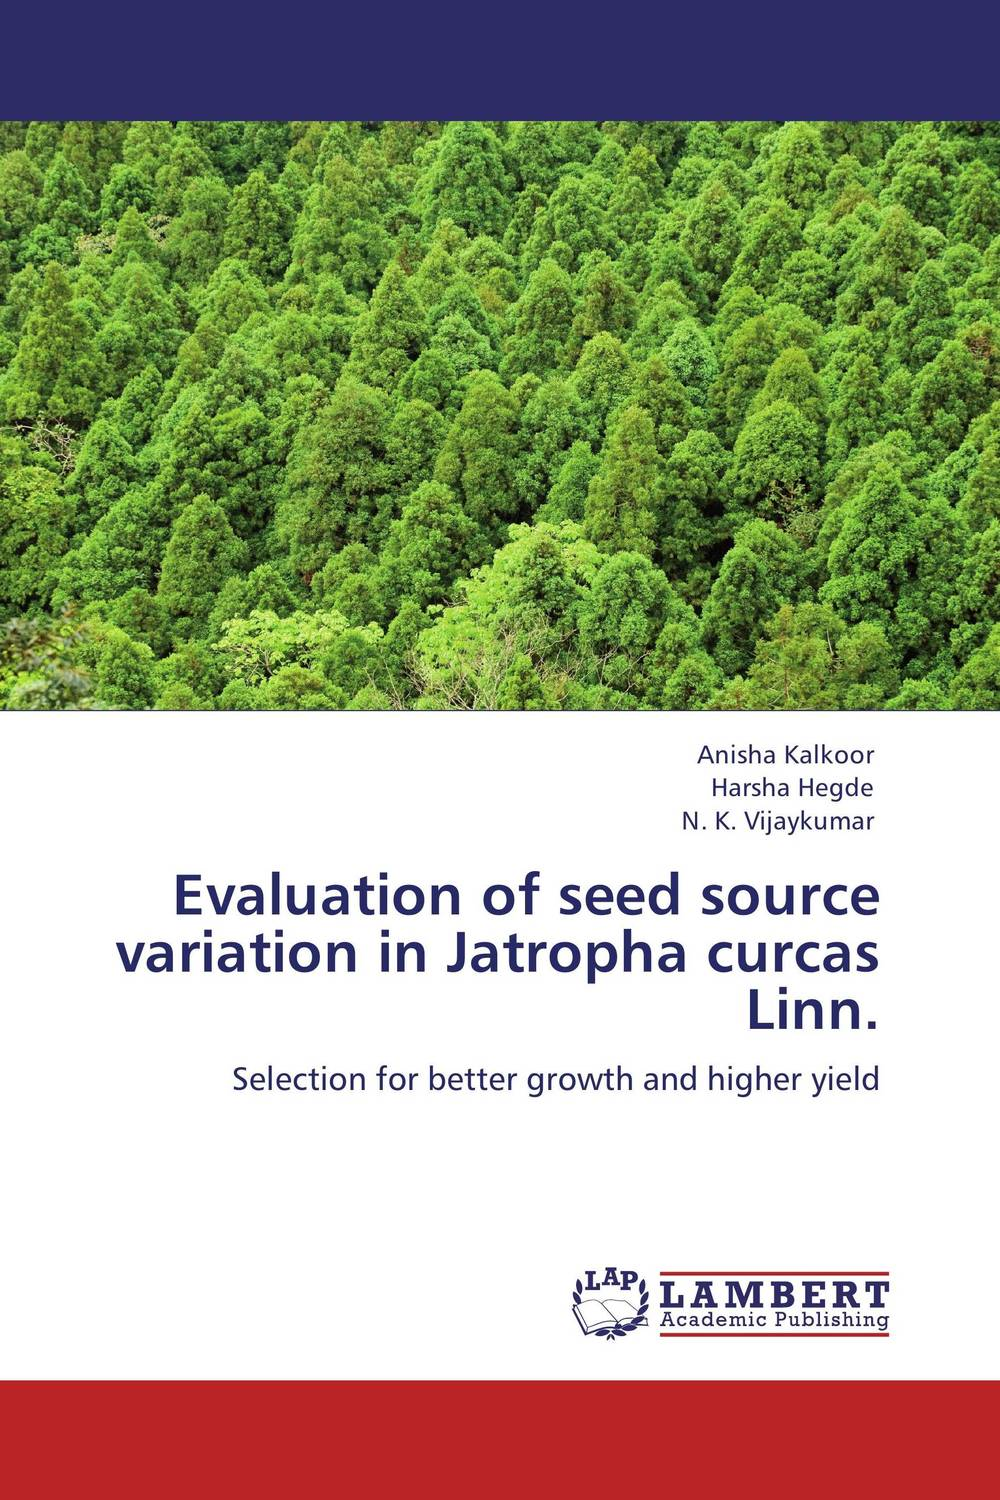 Evaluation of seed source variation in Jatropha curcas Linn. evaluation of lucern as a predator source for wheat aphids